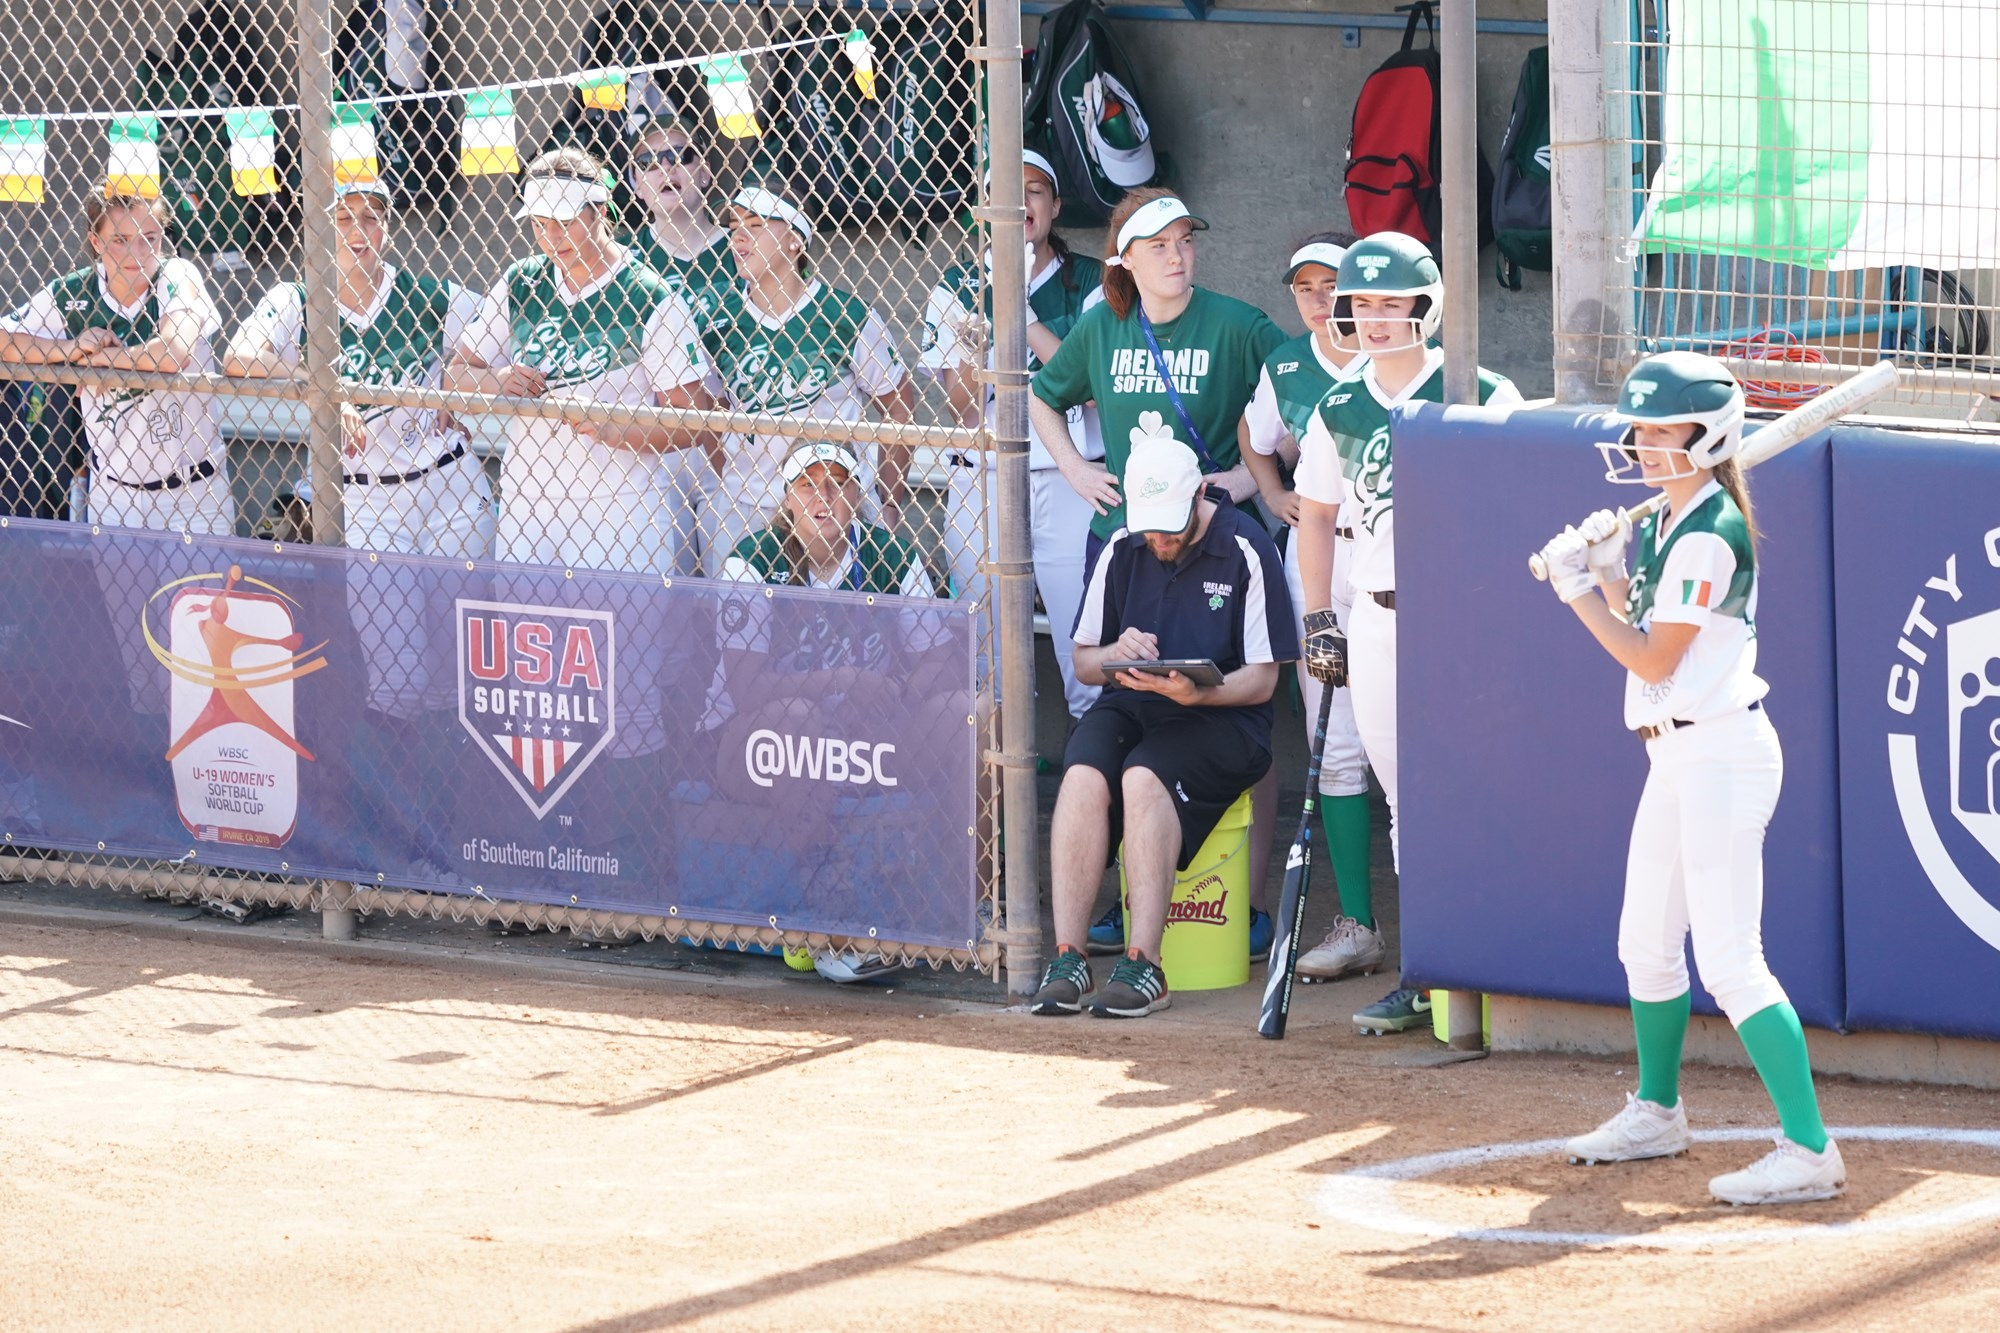 Ireland made the debut in the U-19 Women's Softball World Cup